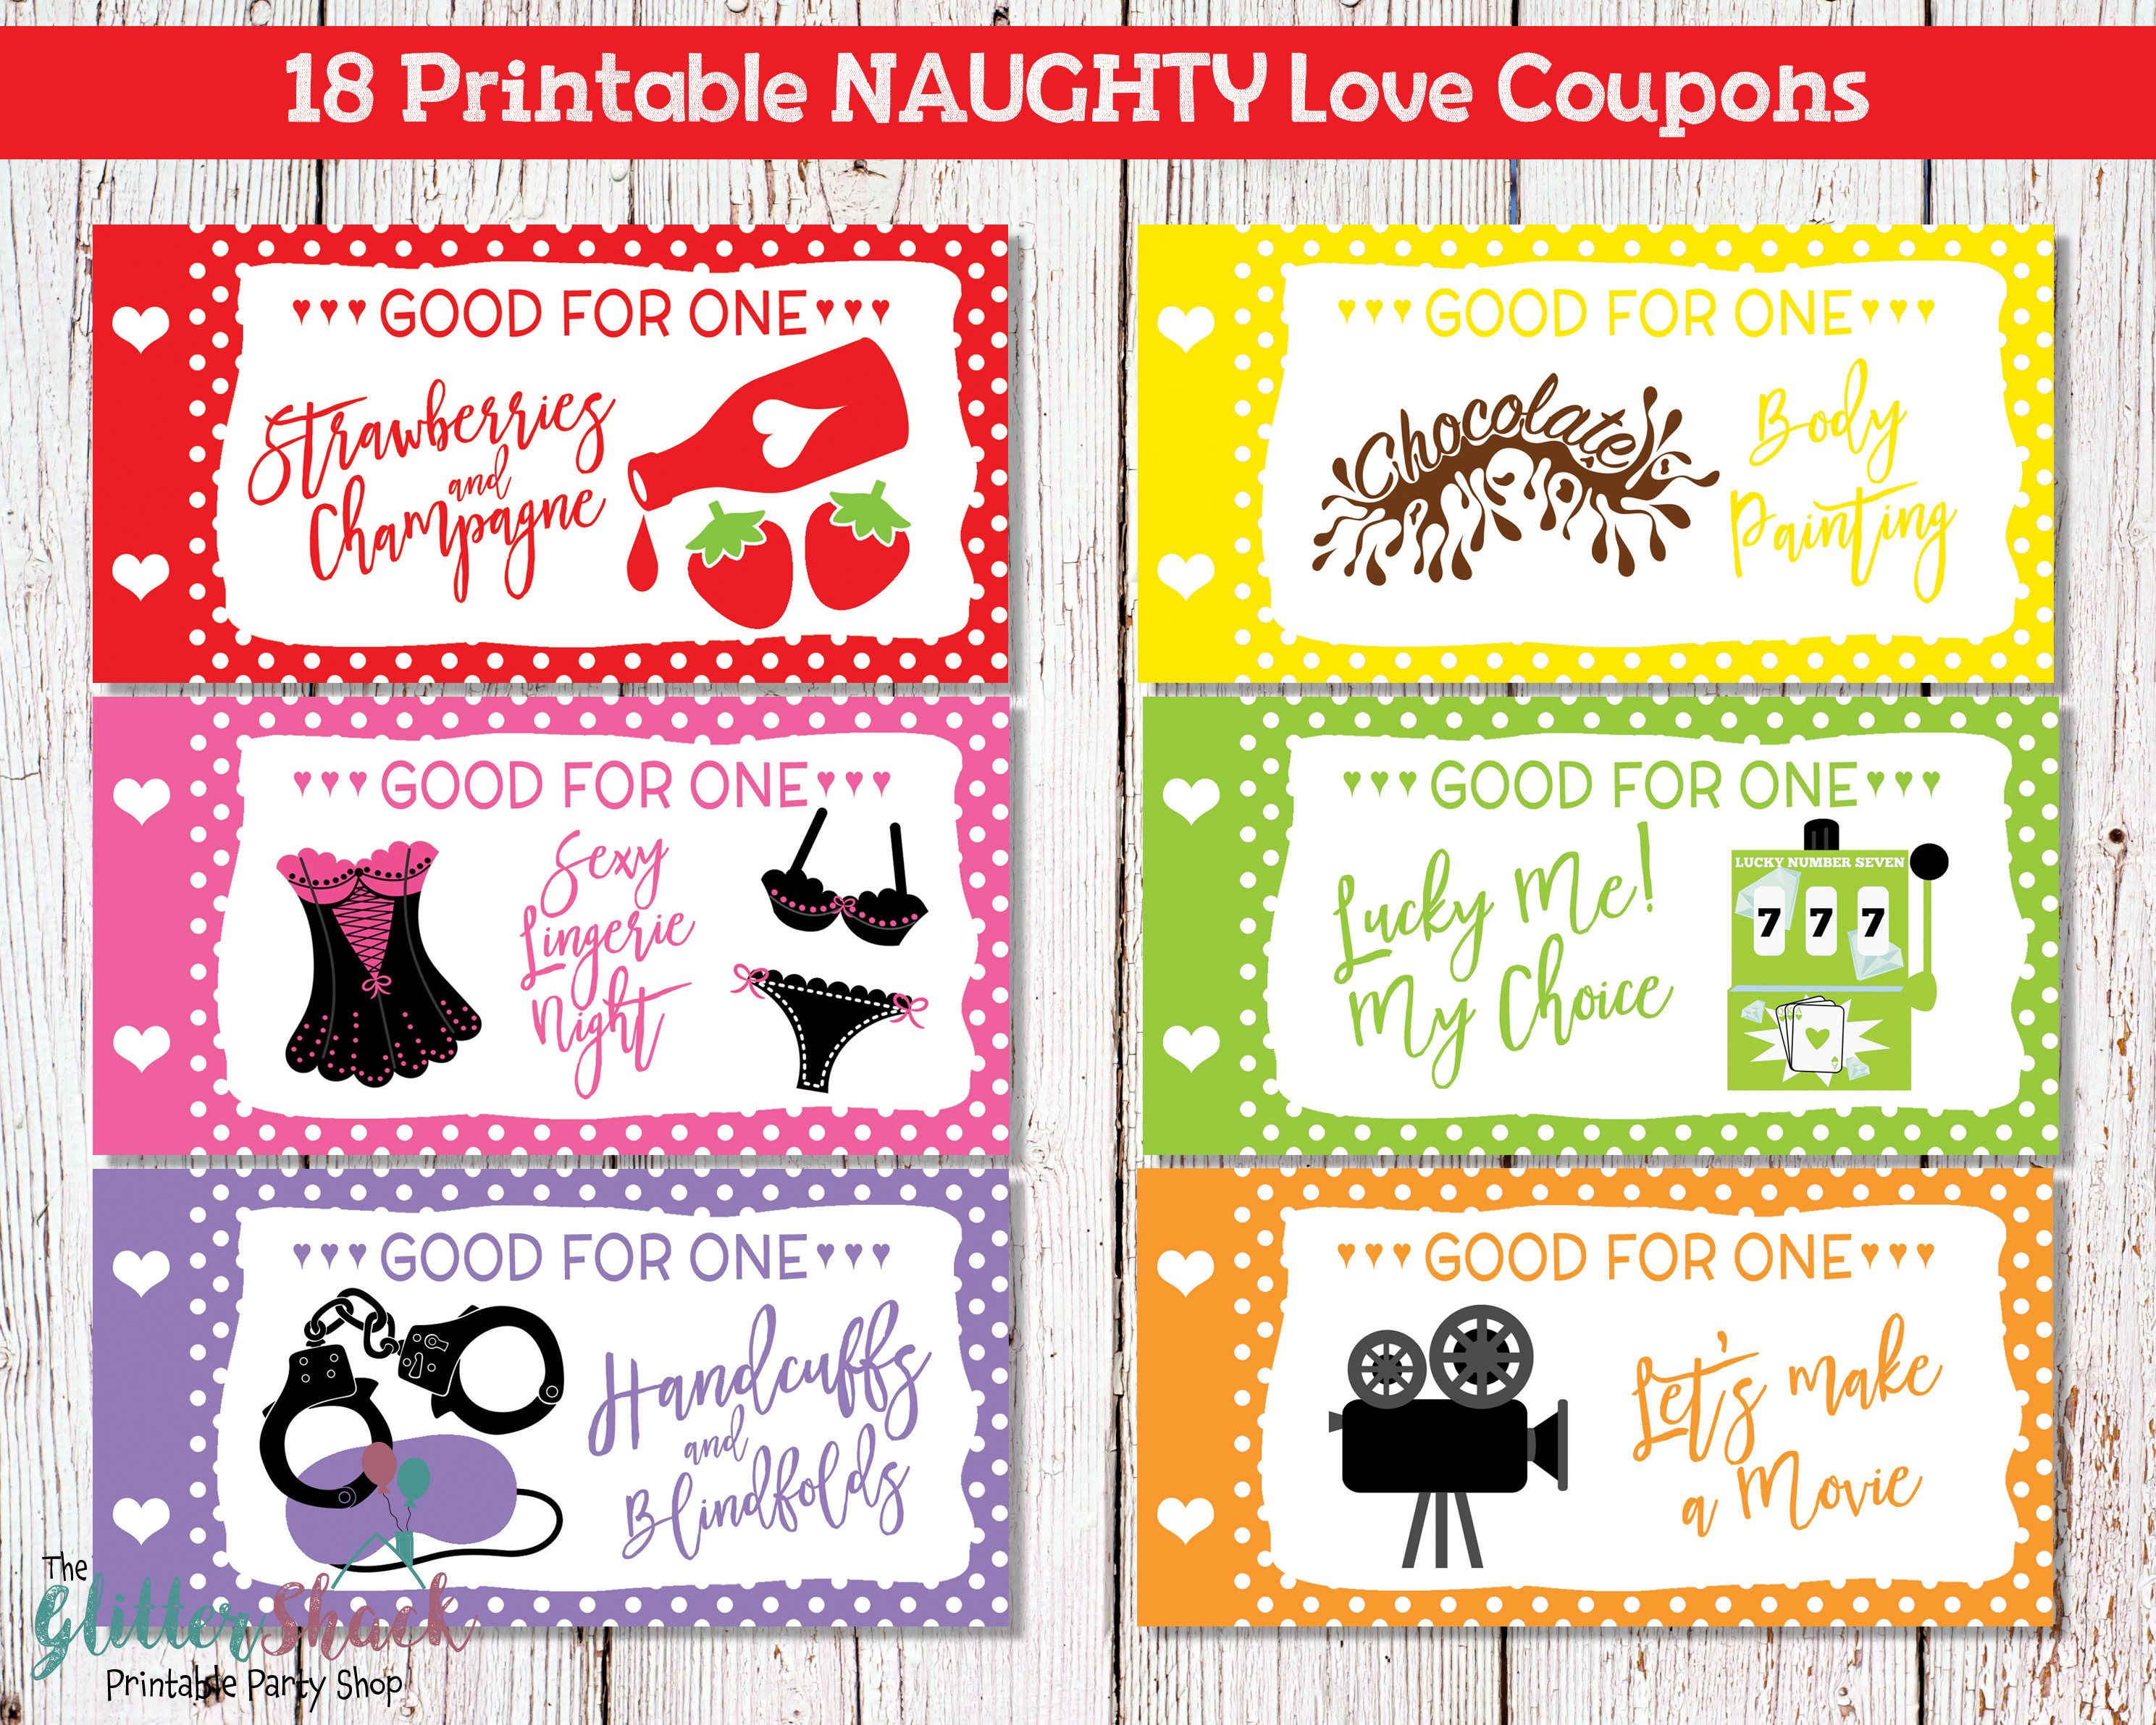 Printable naughty love coupons for men husband boyfriend for Coupons for my boyfriend